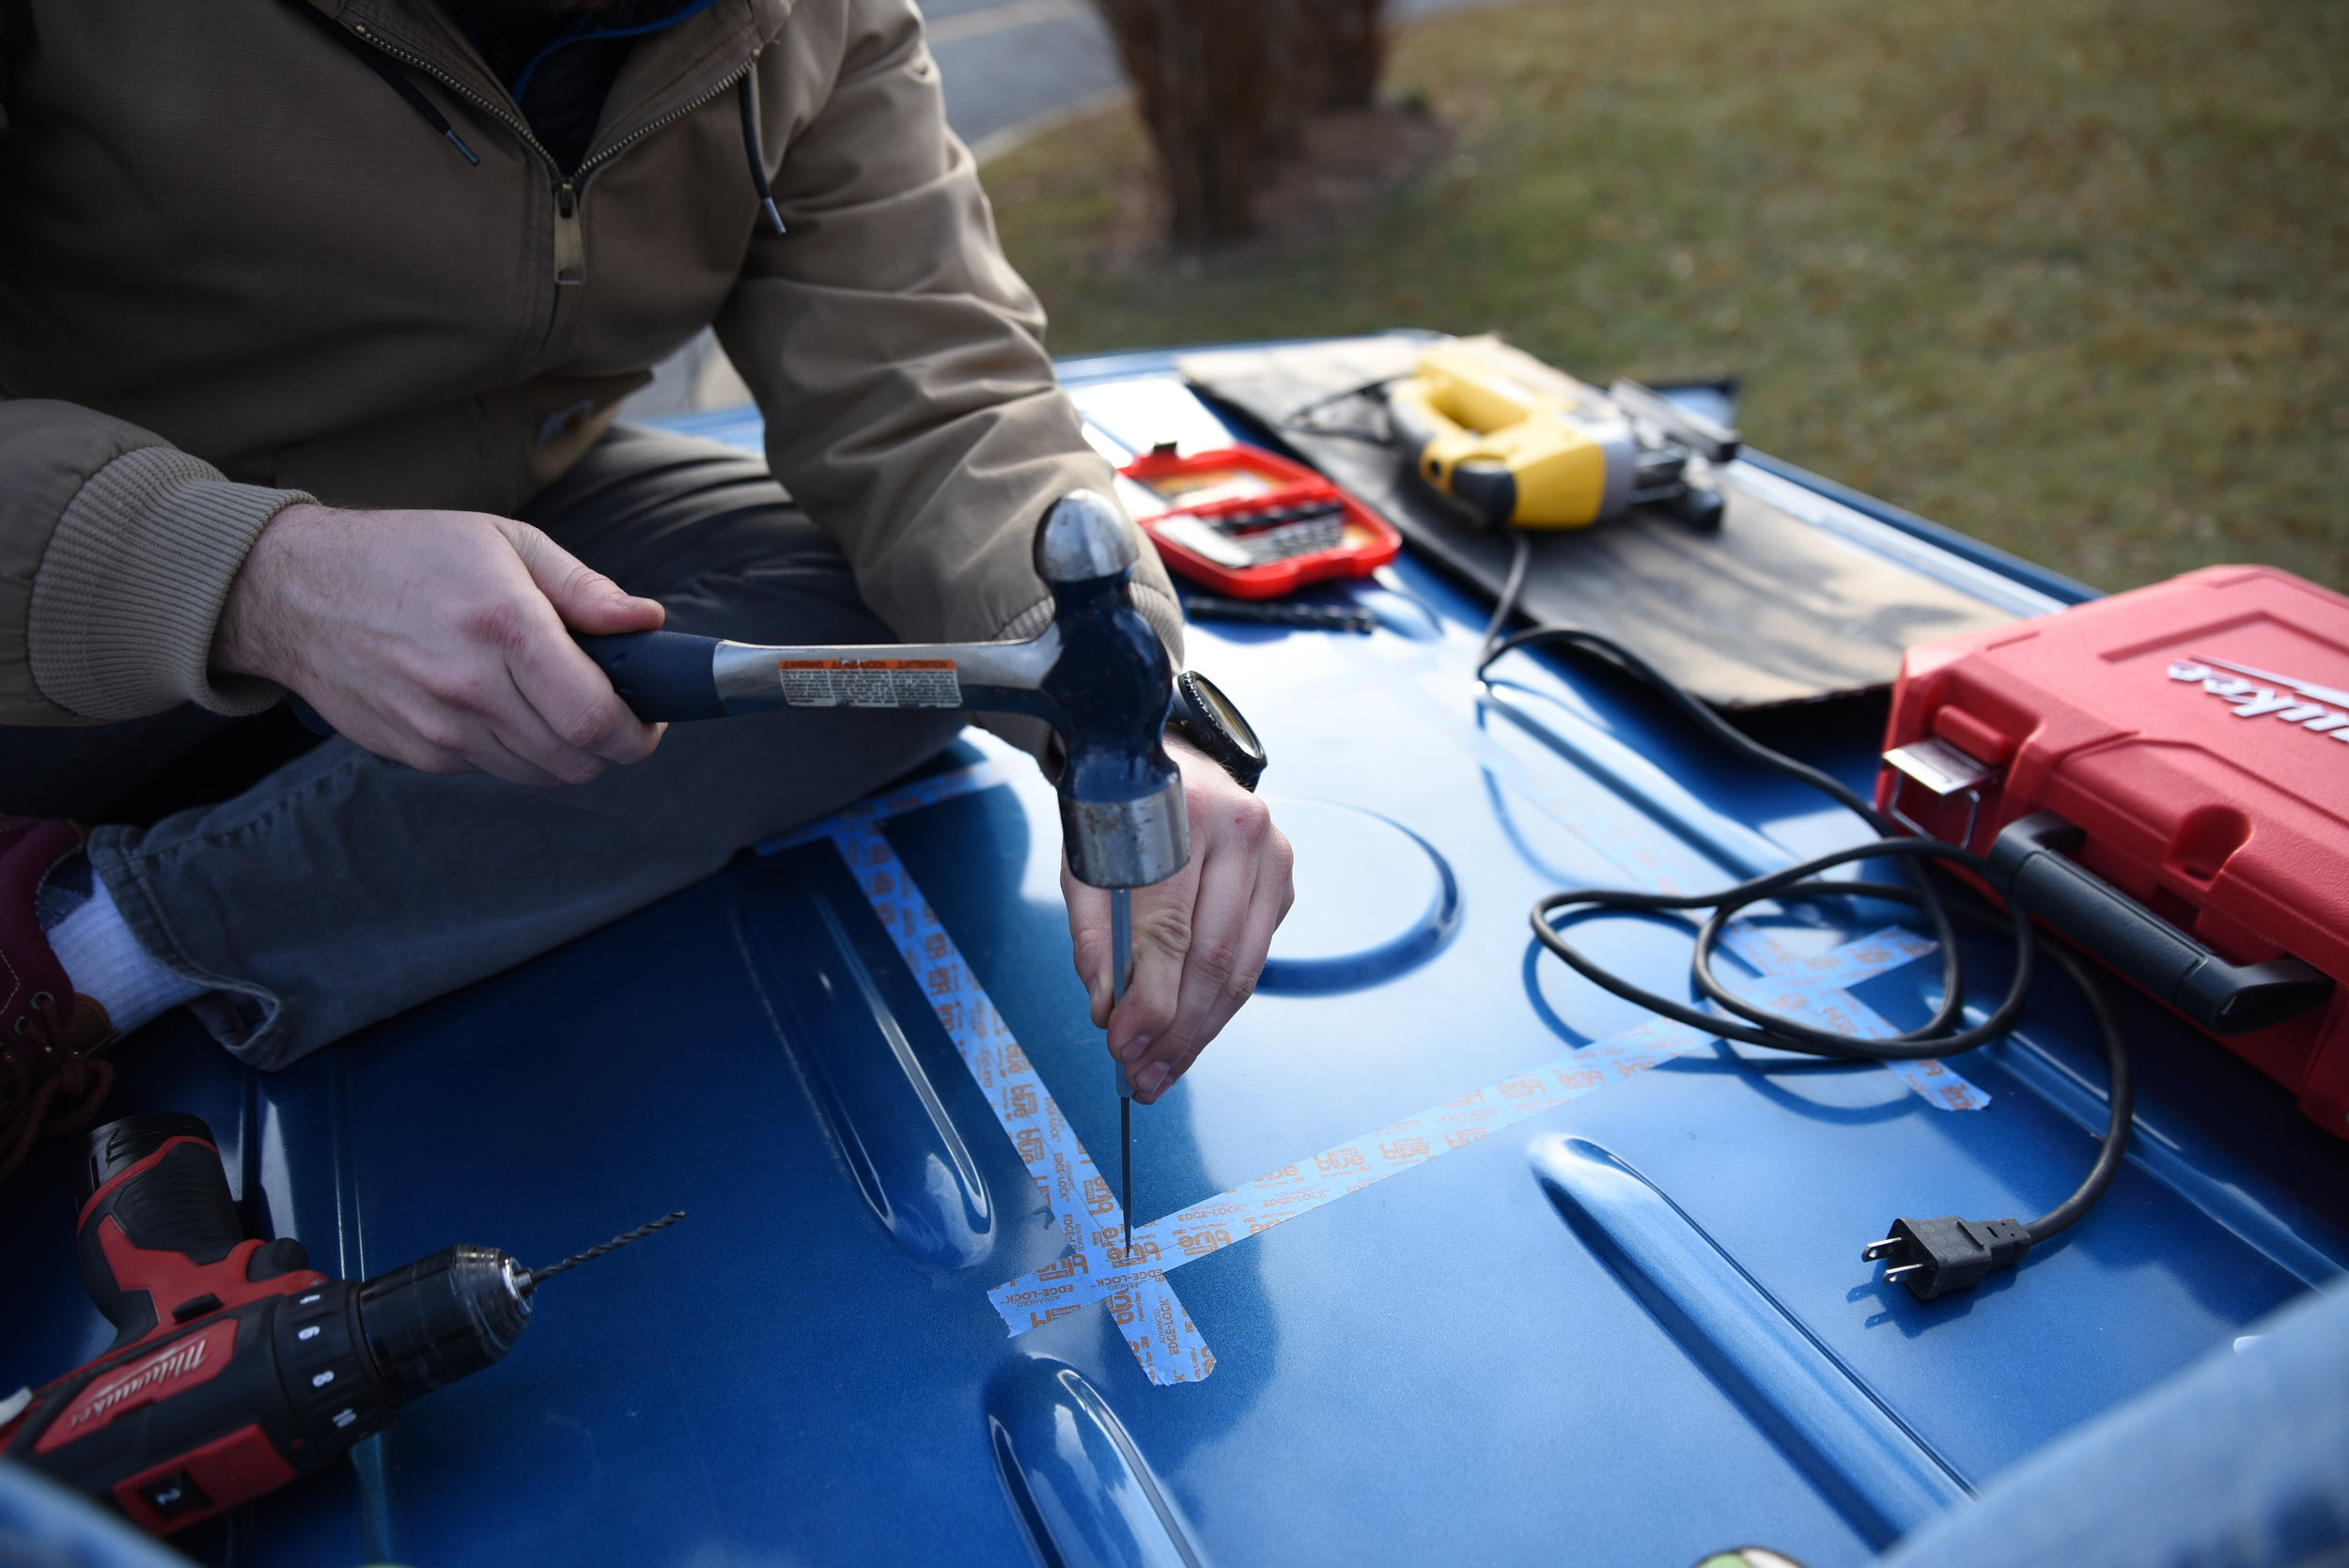 Ian uses a hammer and awl to make an indentation to allow the drill bit to gain purchase on the slippery roof of the van.